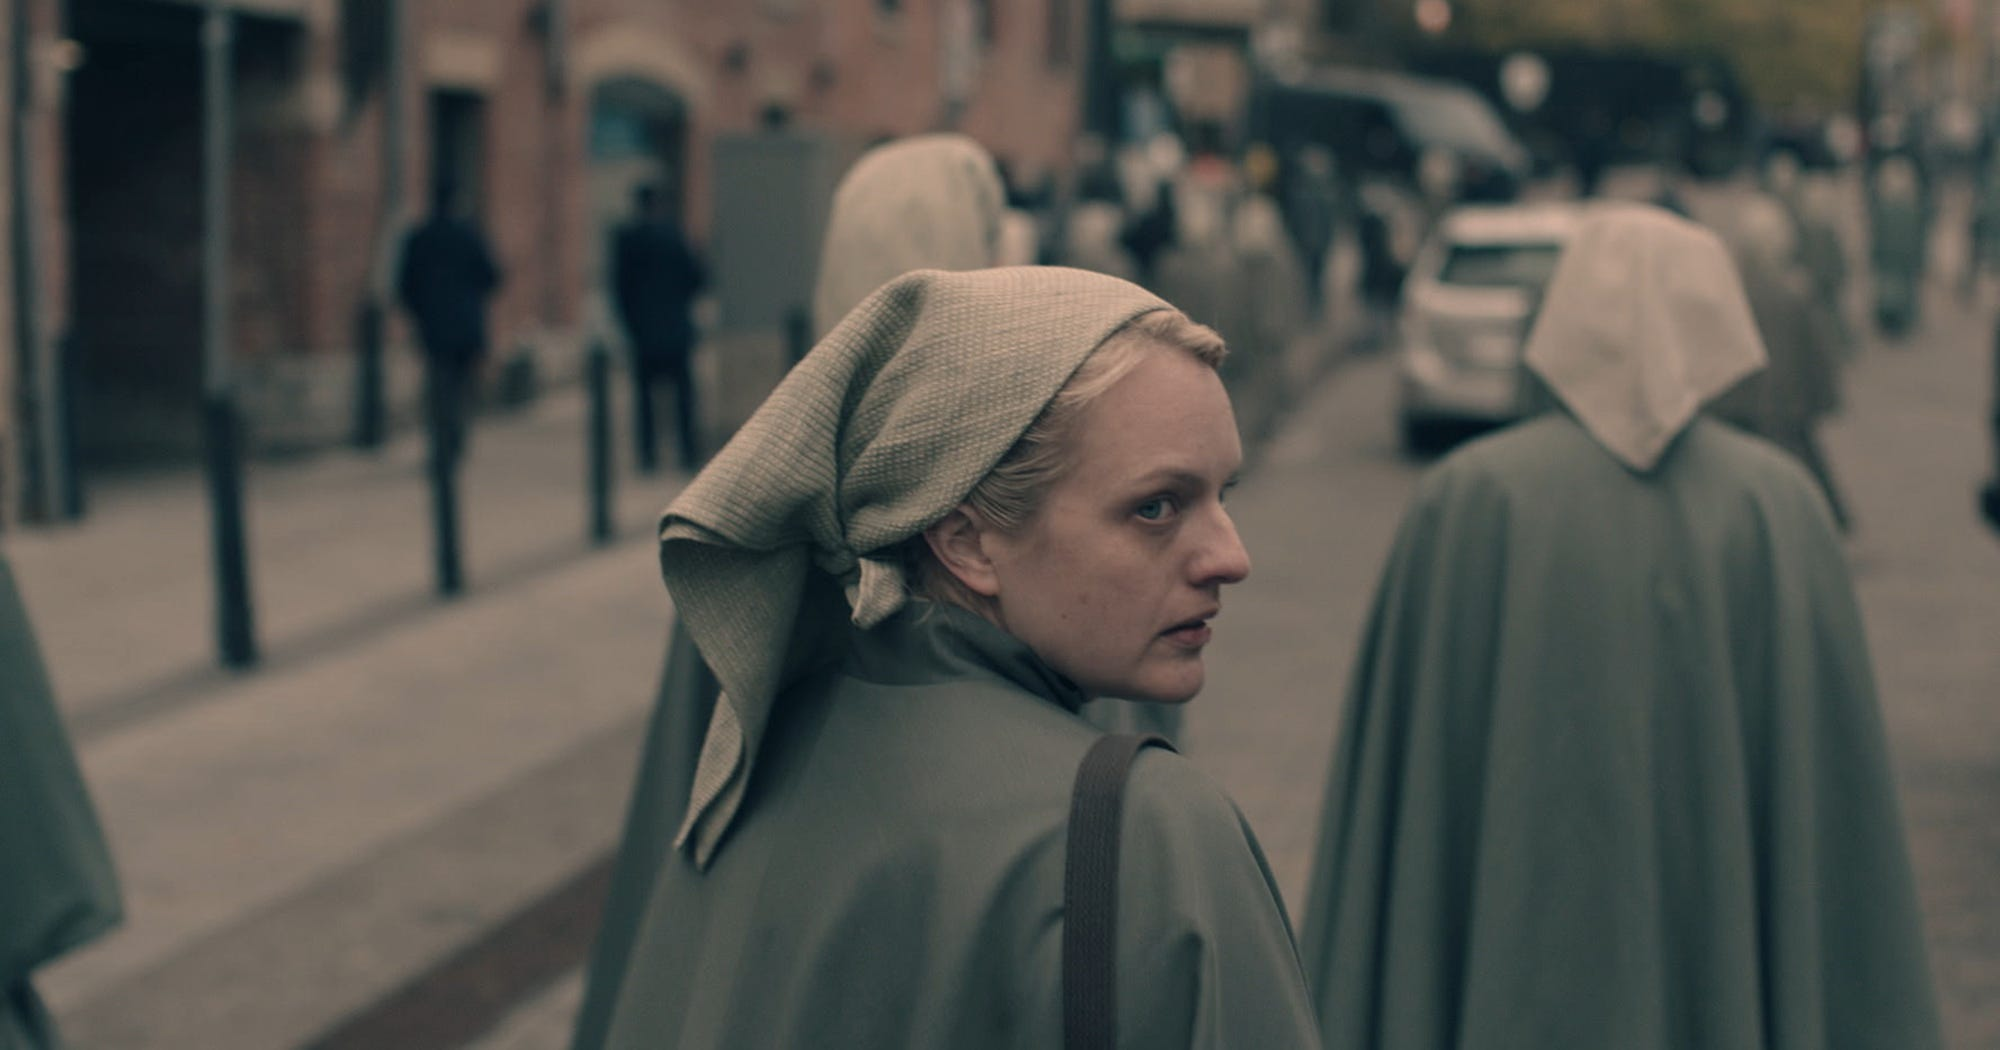 The Handmaids Tale Cast Guide To Season 3 Characters